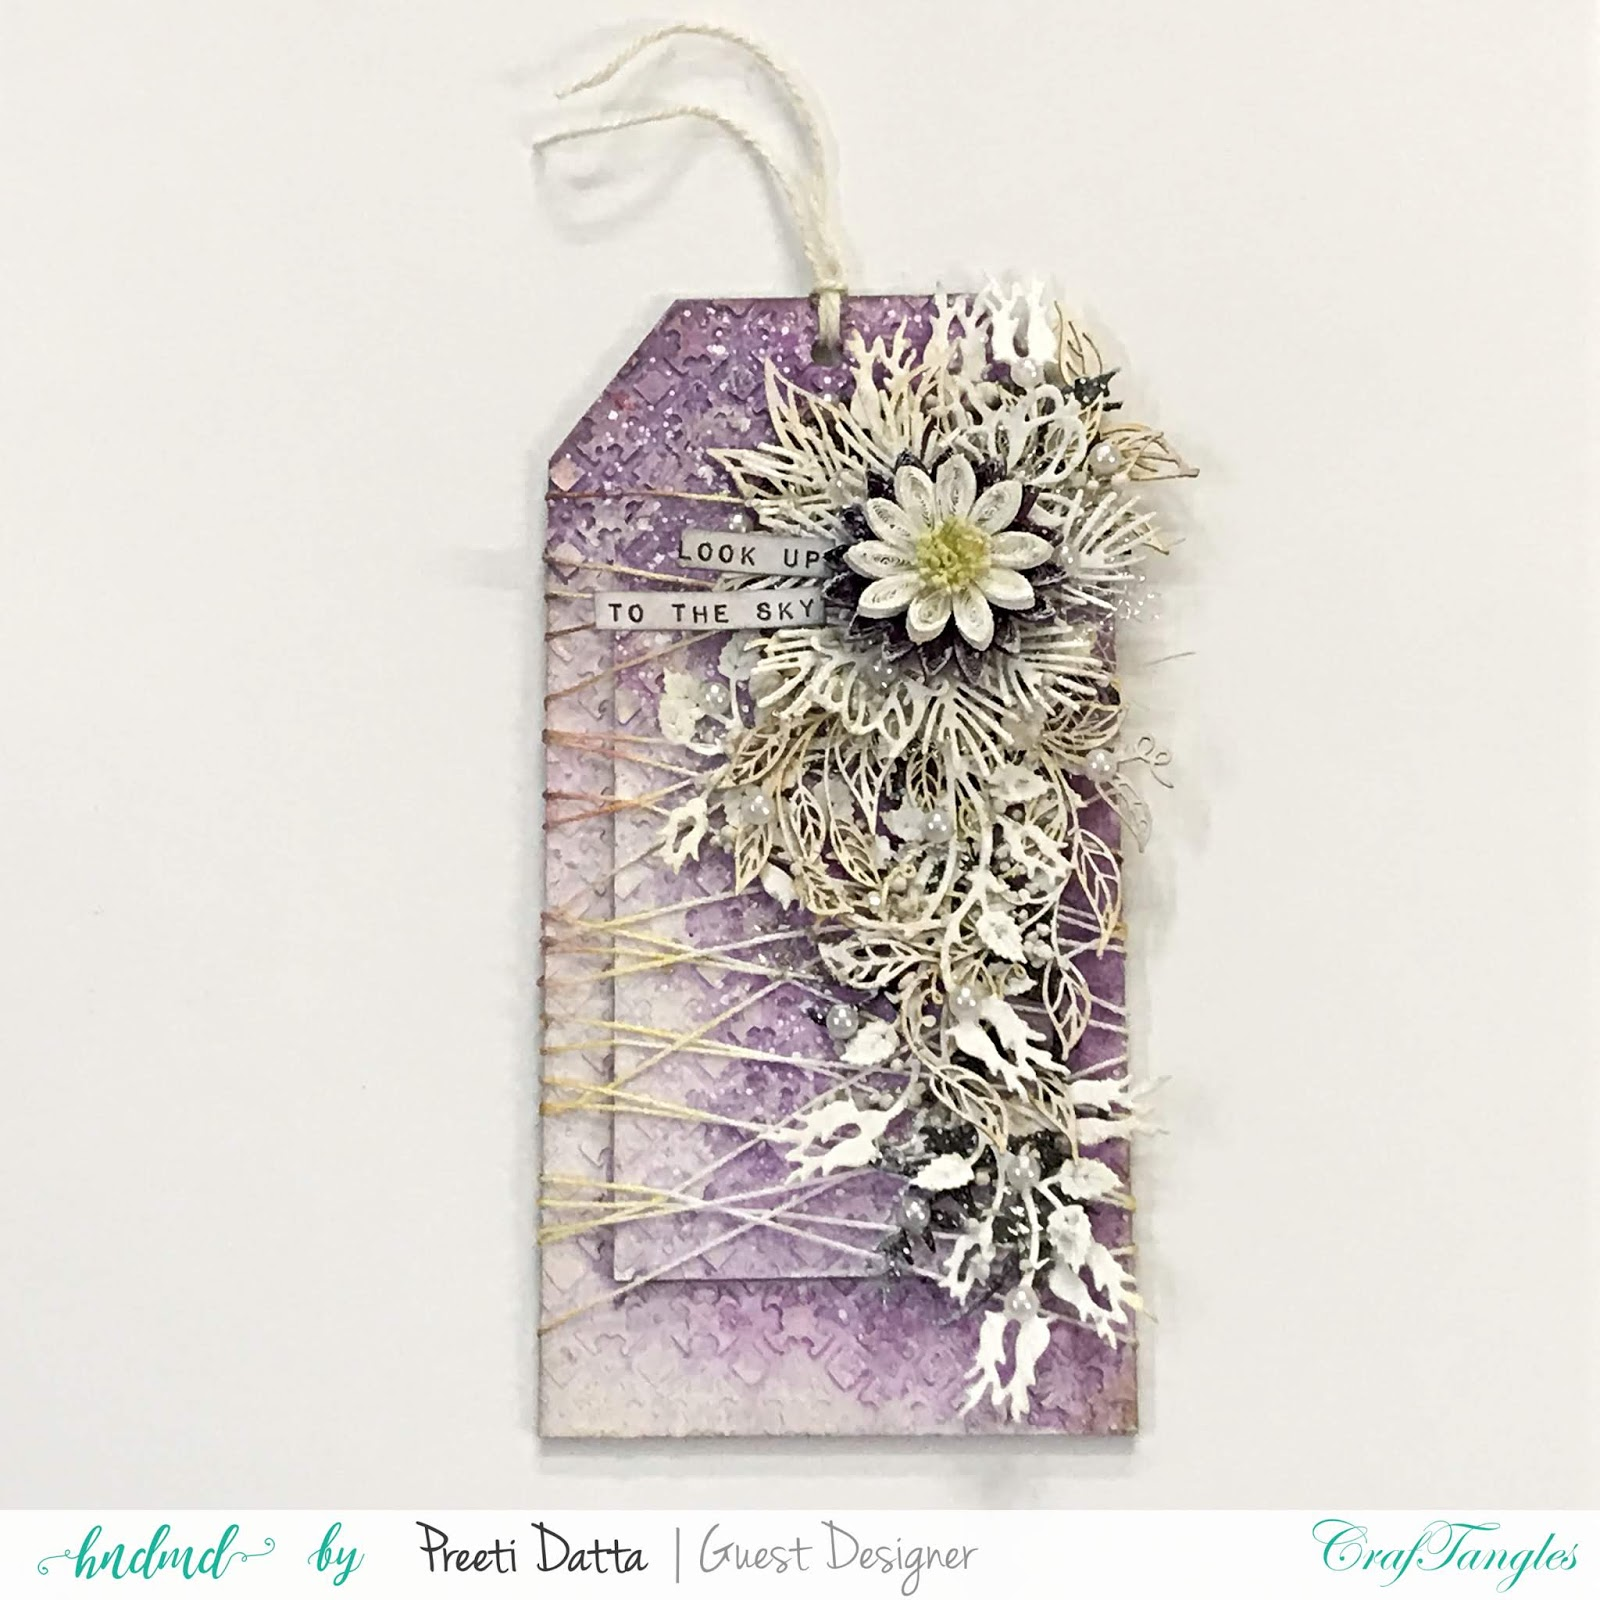 Floral Mixed Media Tag (with Pictorial) by Preeti Datta 2